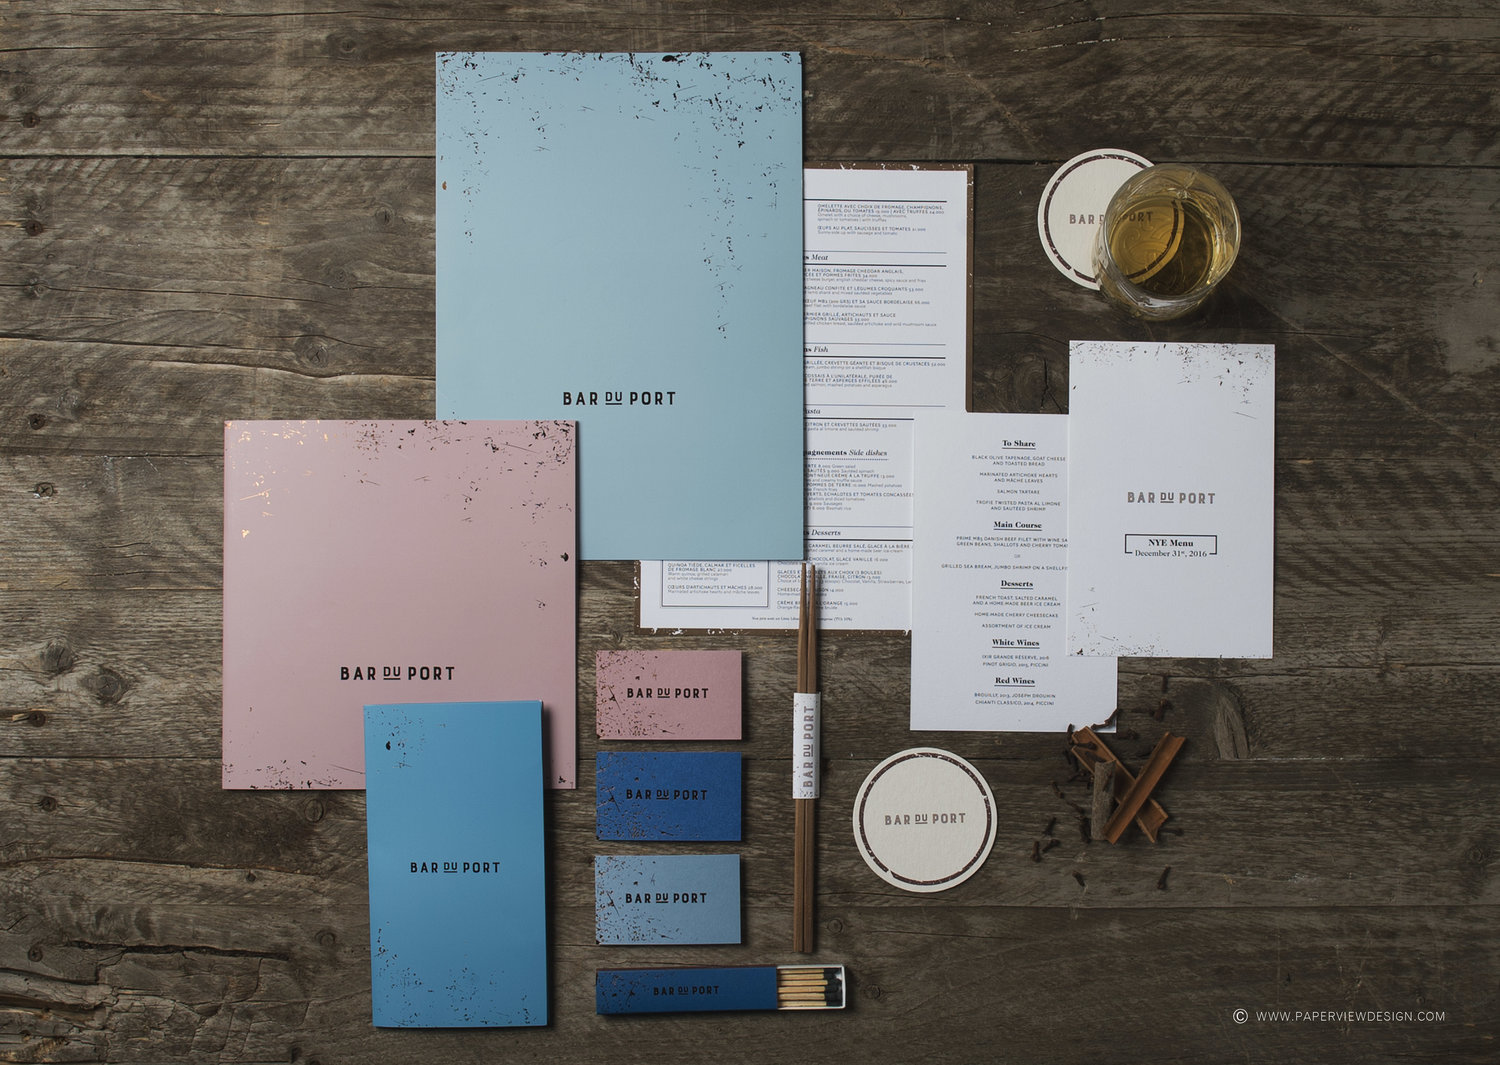 Paperview design | Branding agency | Stationary, logo and print design | Corporate identity | Restaurant branding